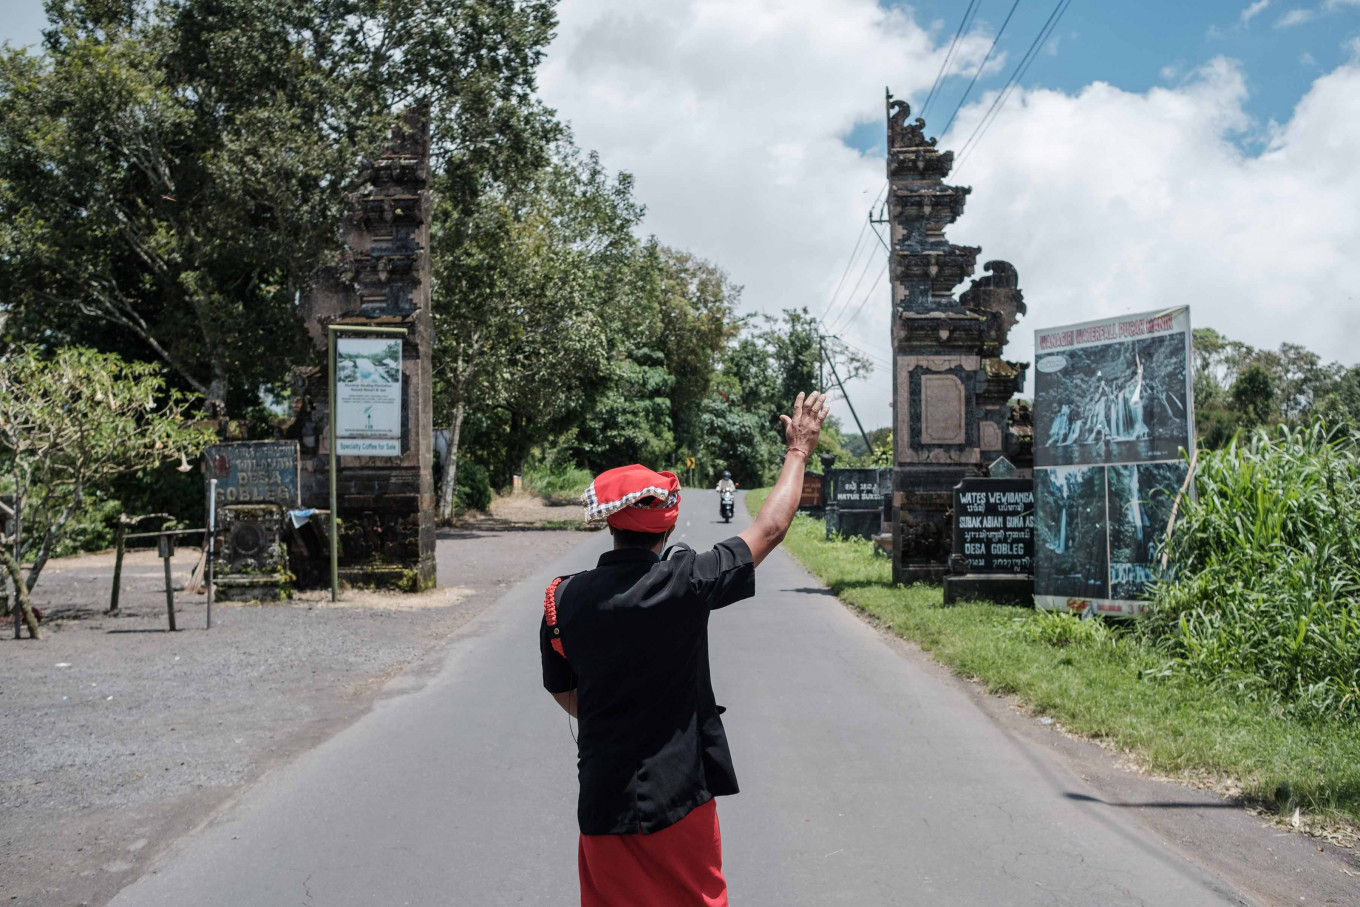 Feeling stuck in lockdown? What I learned from Day of Silence in Bali